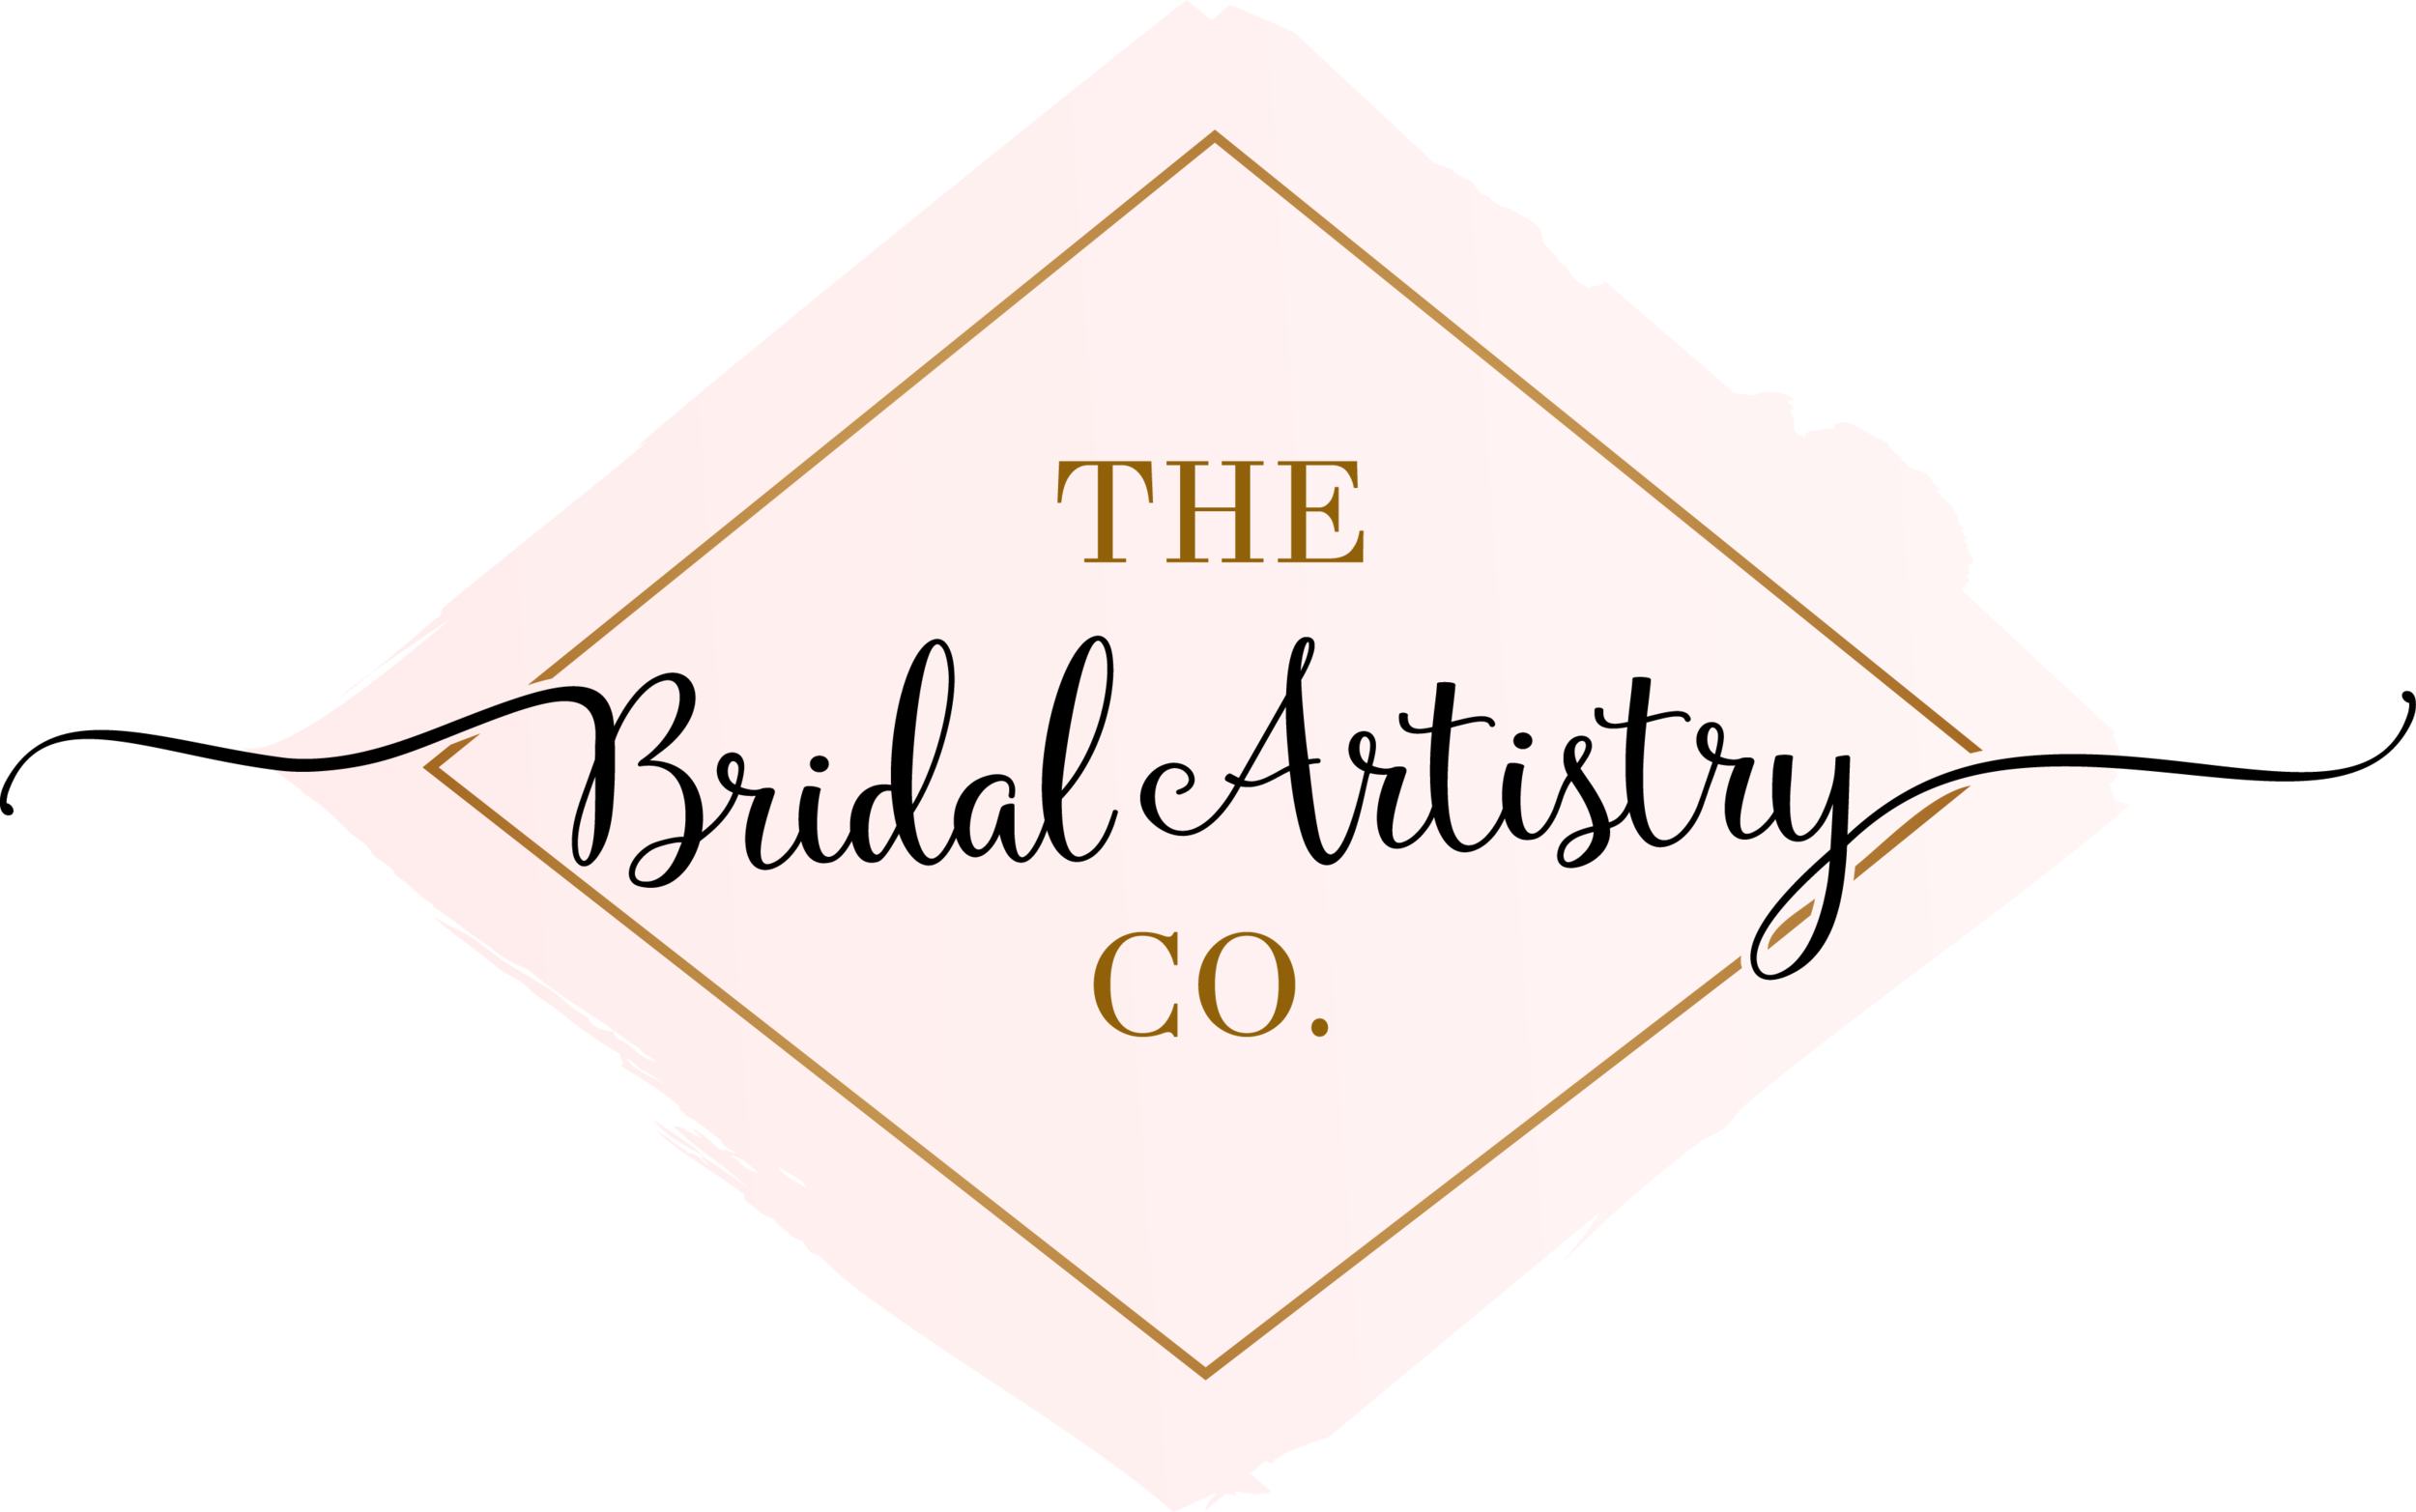 The Bridal Artistry Co.